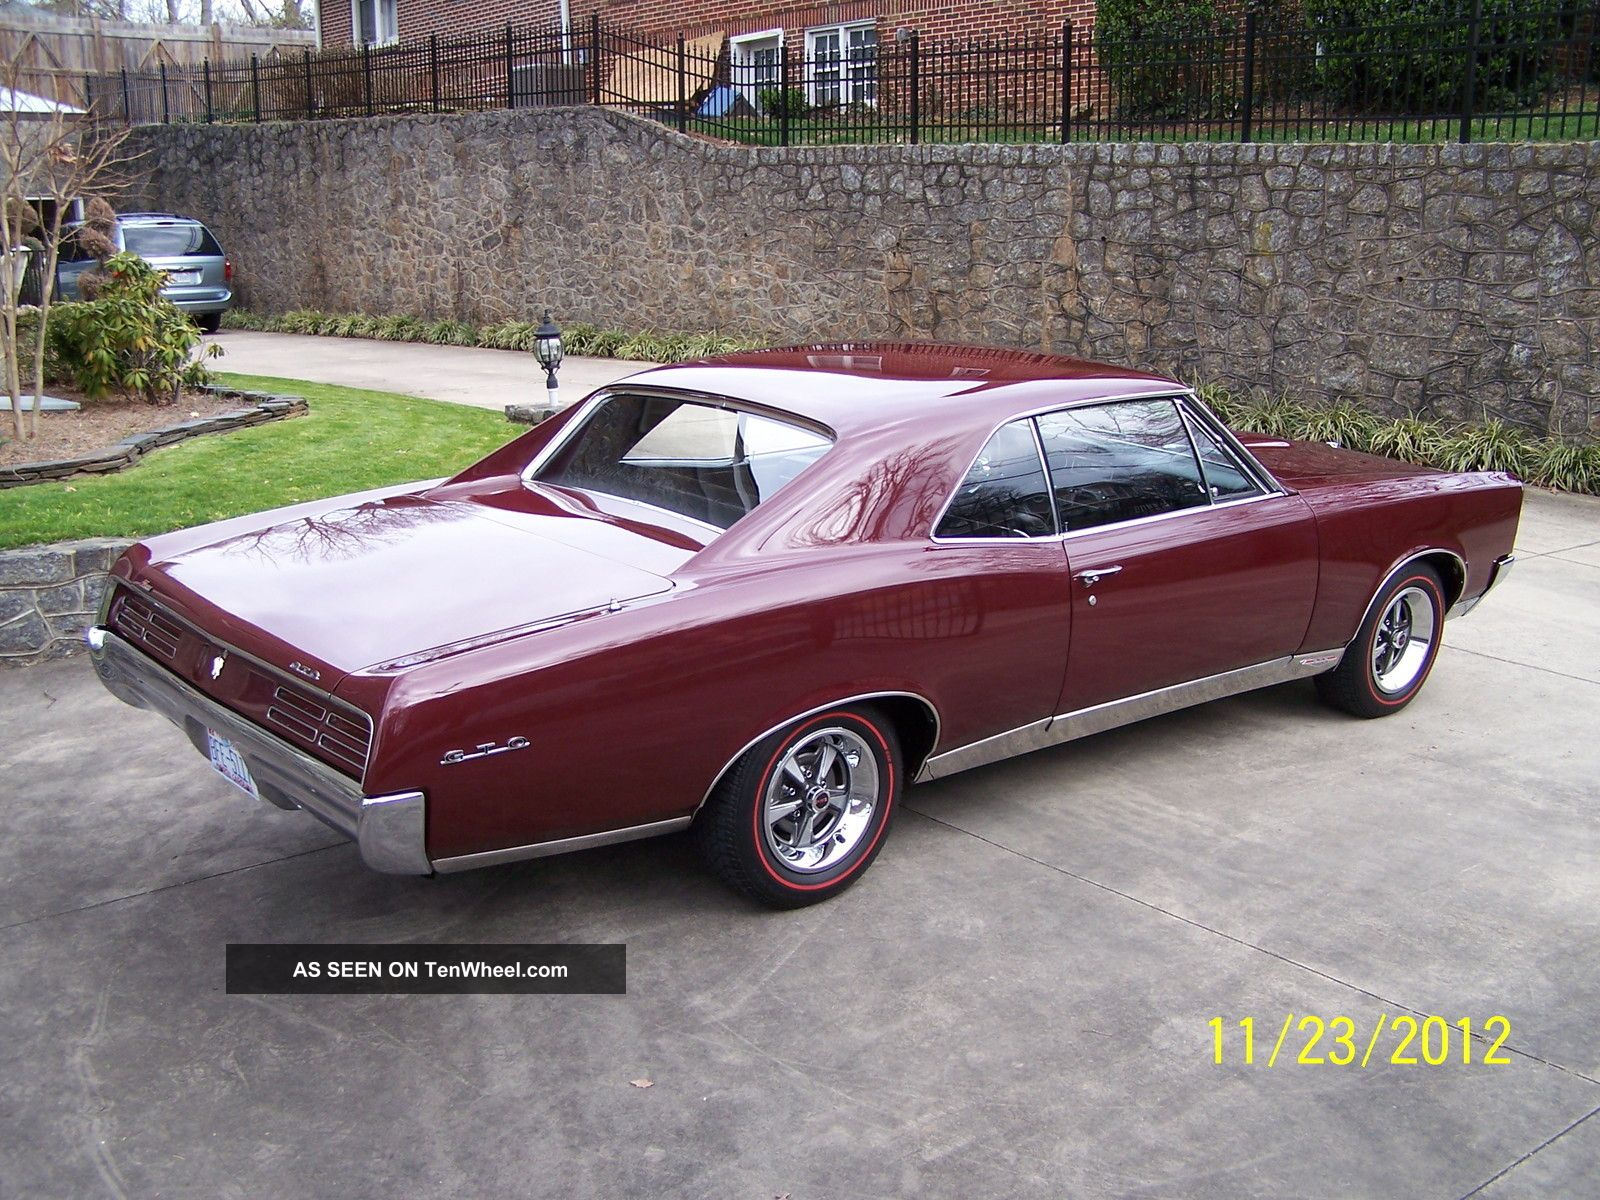 ... 1967 Pontiac Gto GTO photo 3 ...